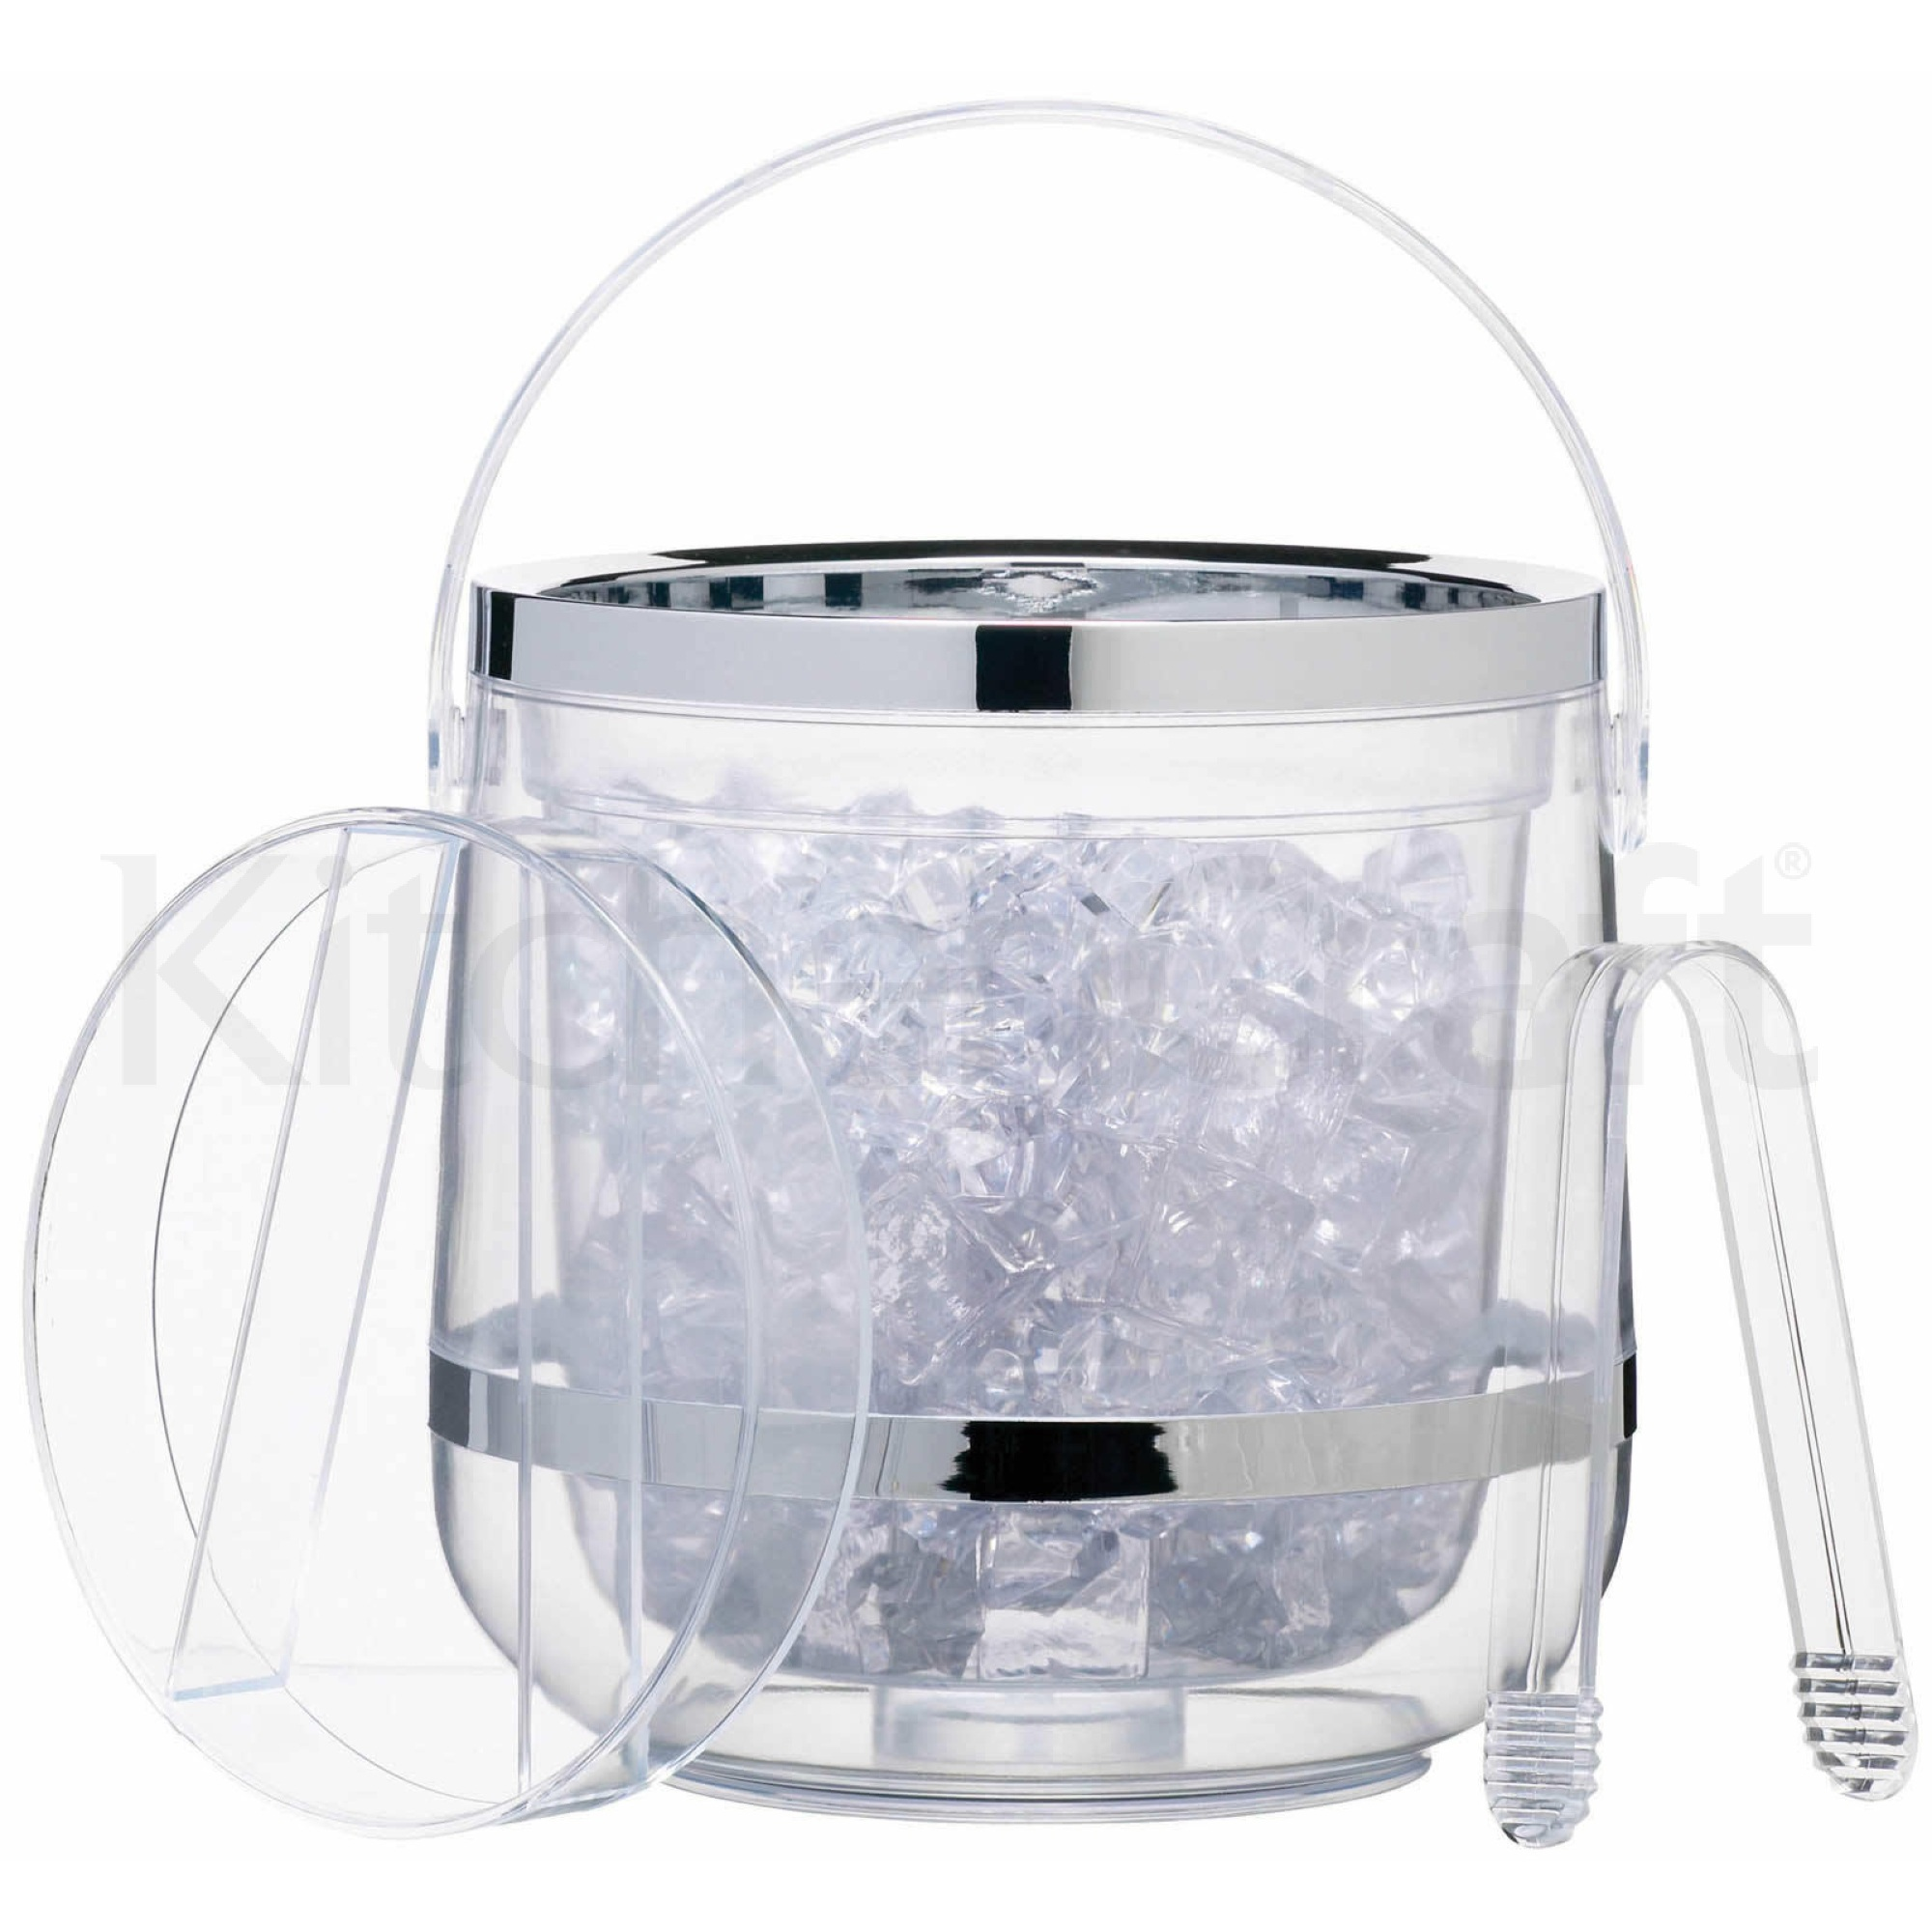 barcraft acrylic double walled insulated ice bucket parties